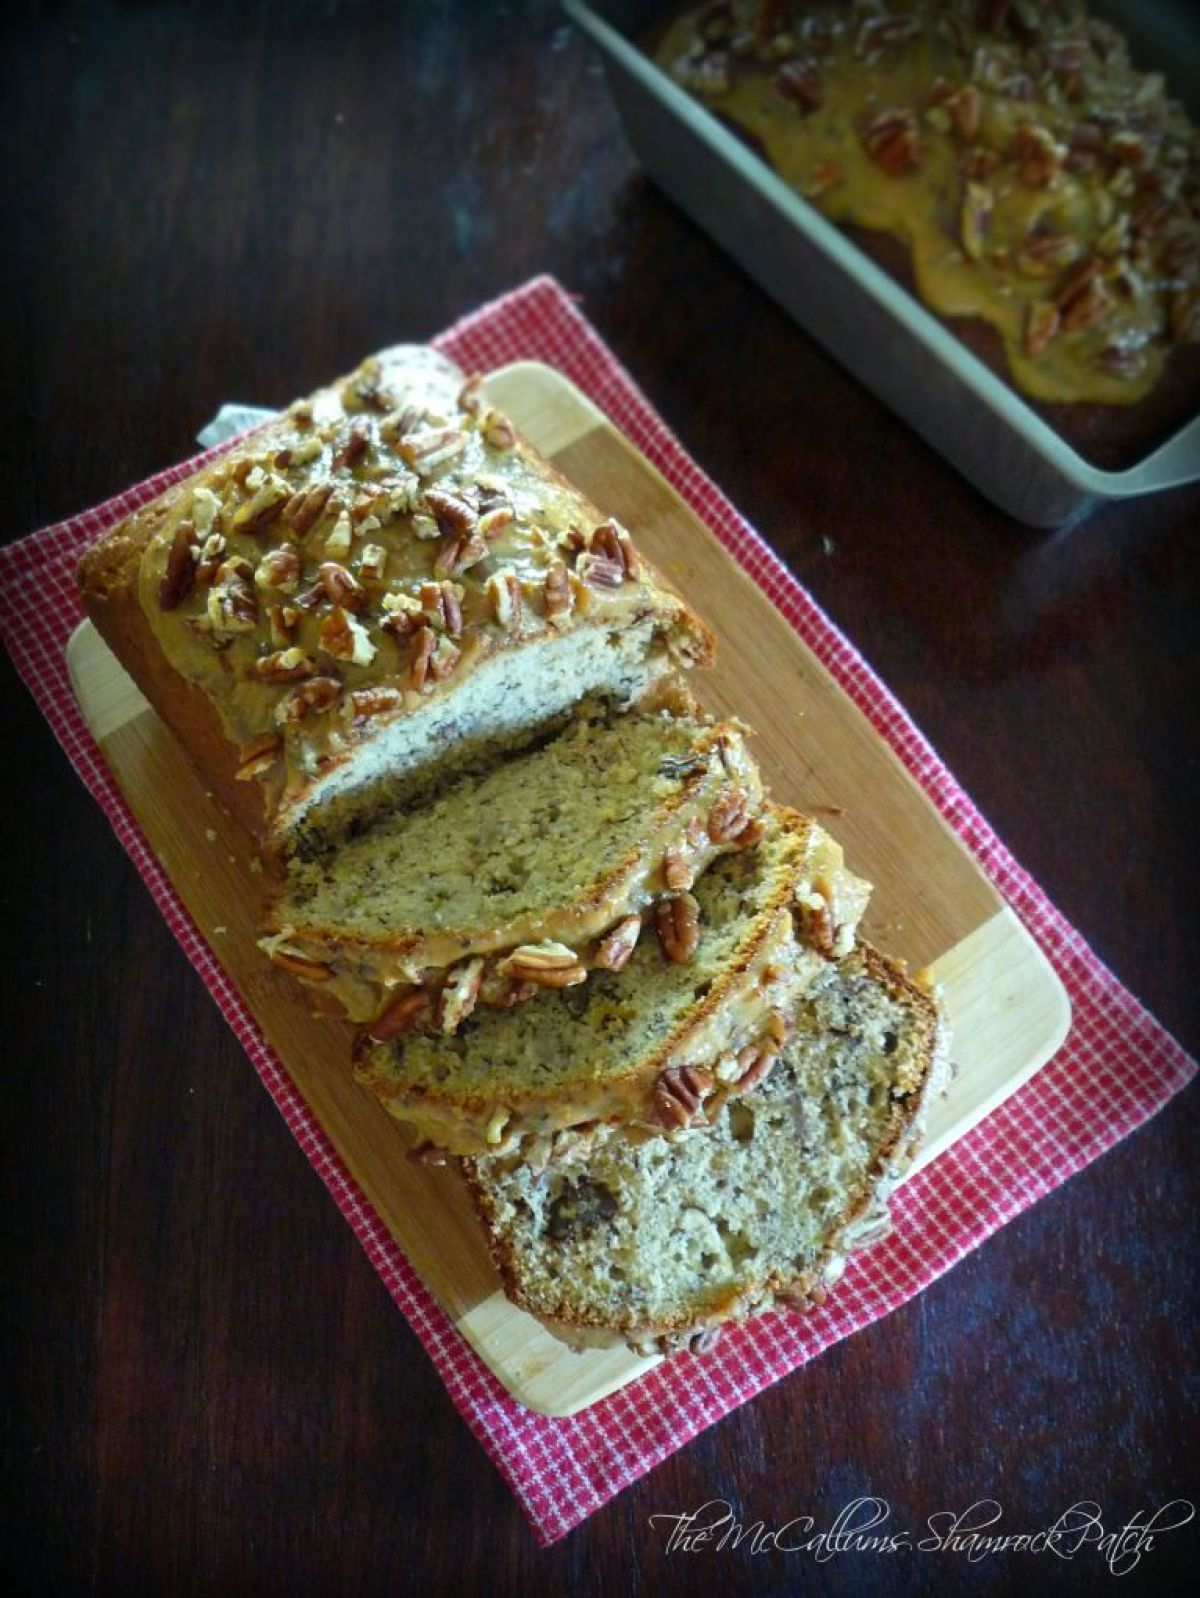 Southern-Style Banana Pecan Bread by The McCallums Shamrock Patch Blog